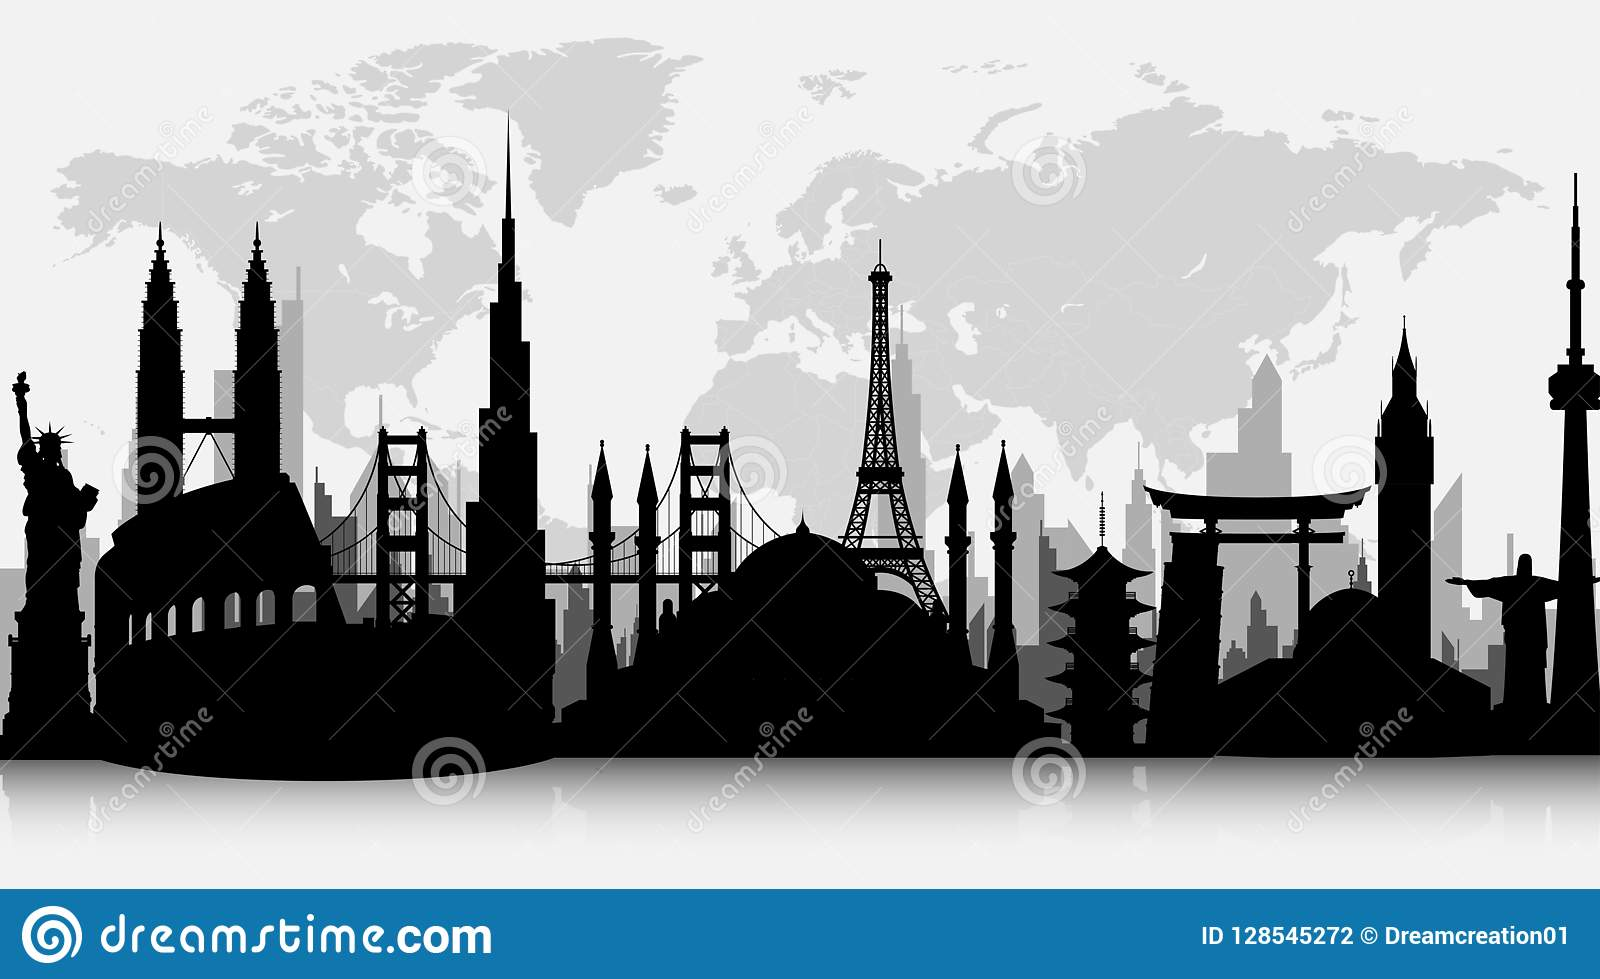 Silhouettes of famous world landmarks